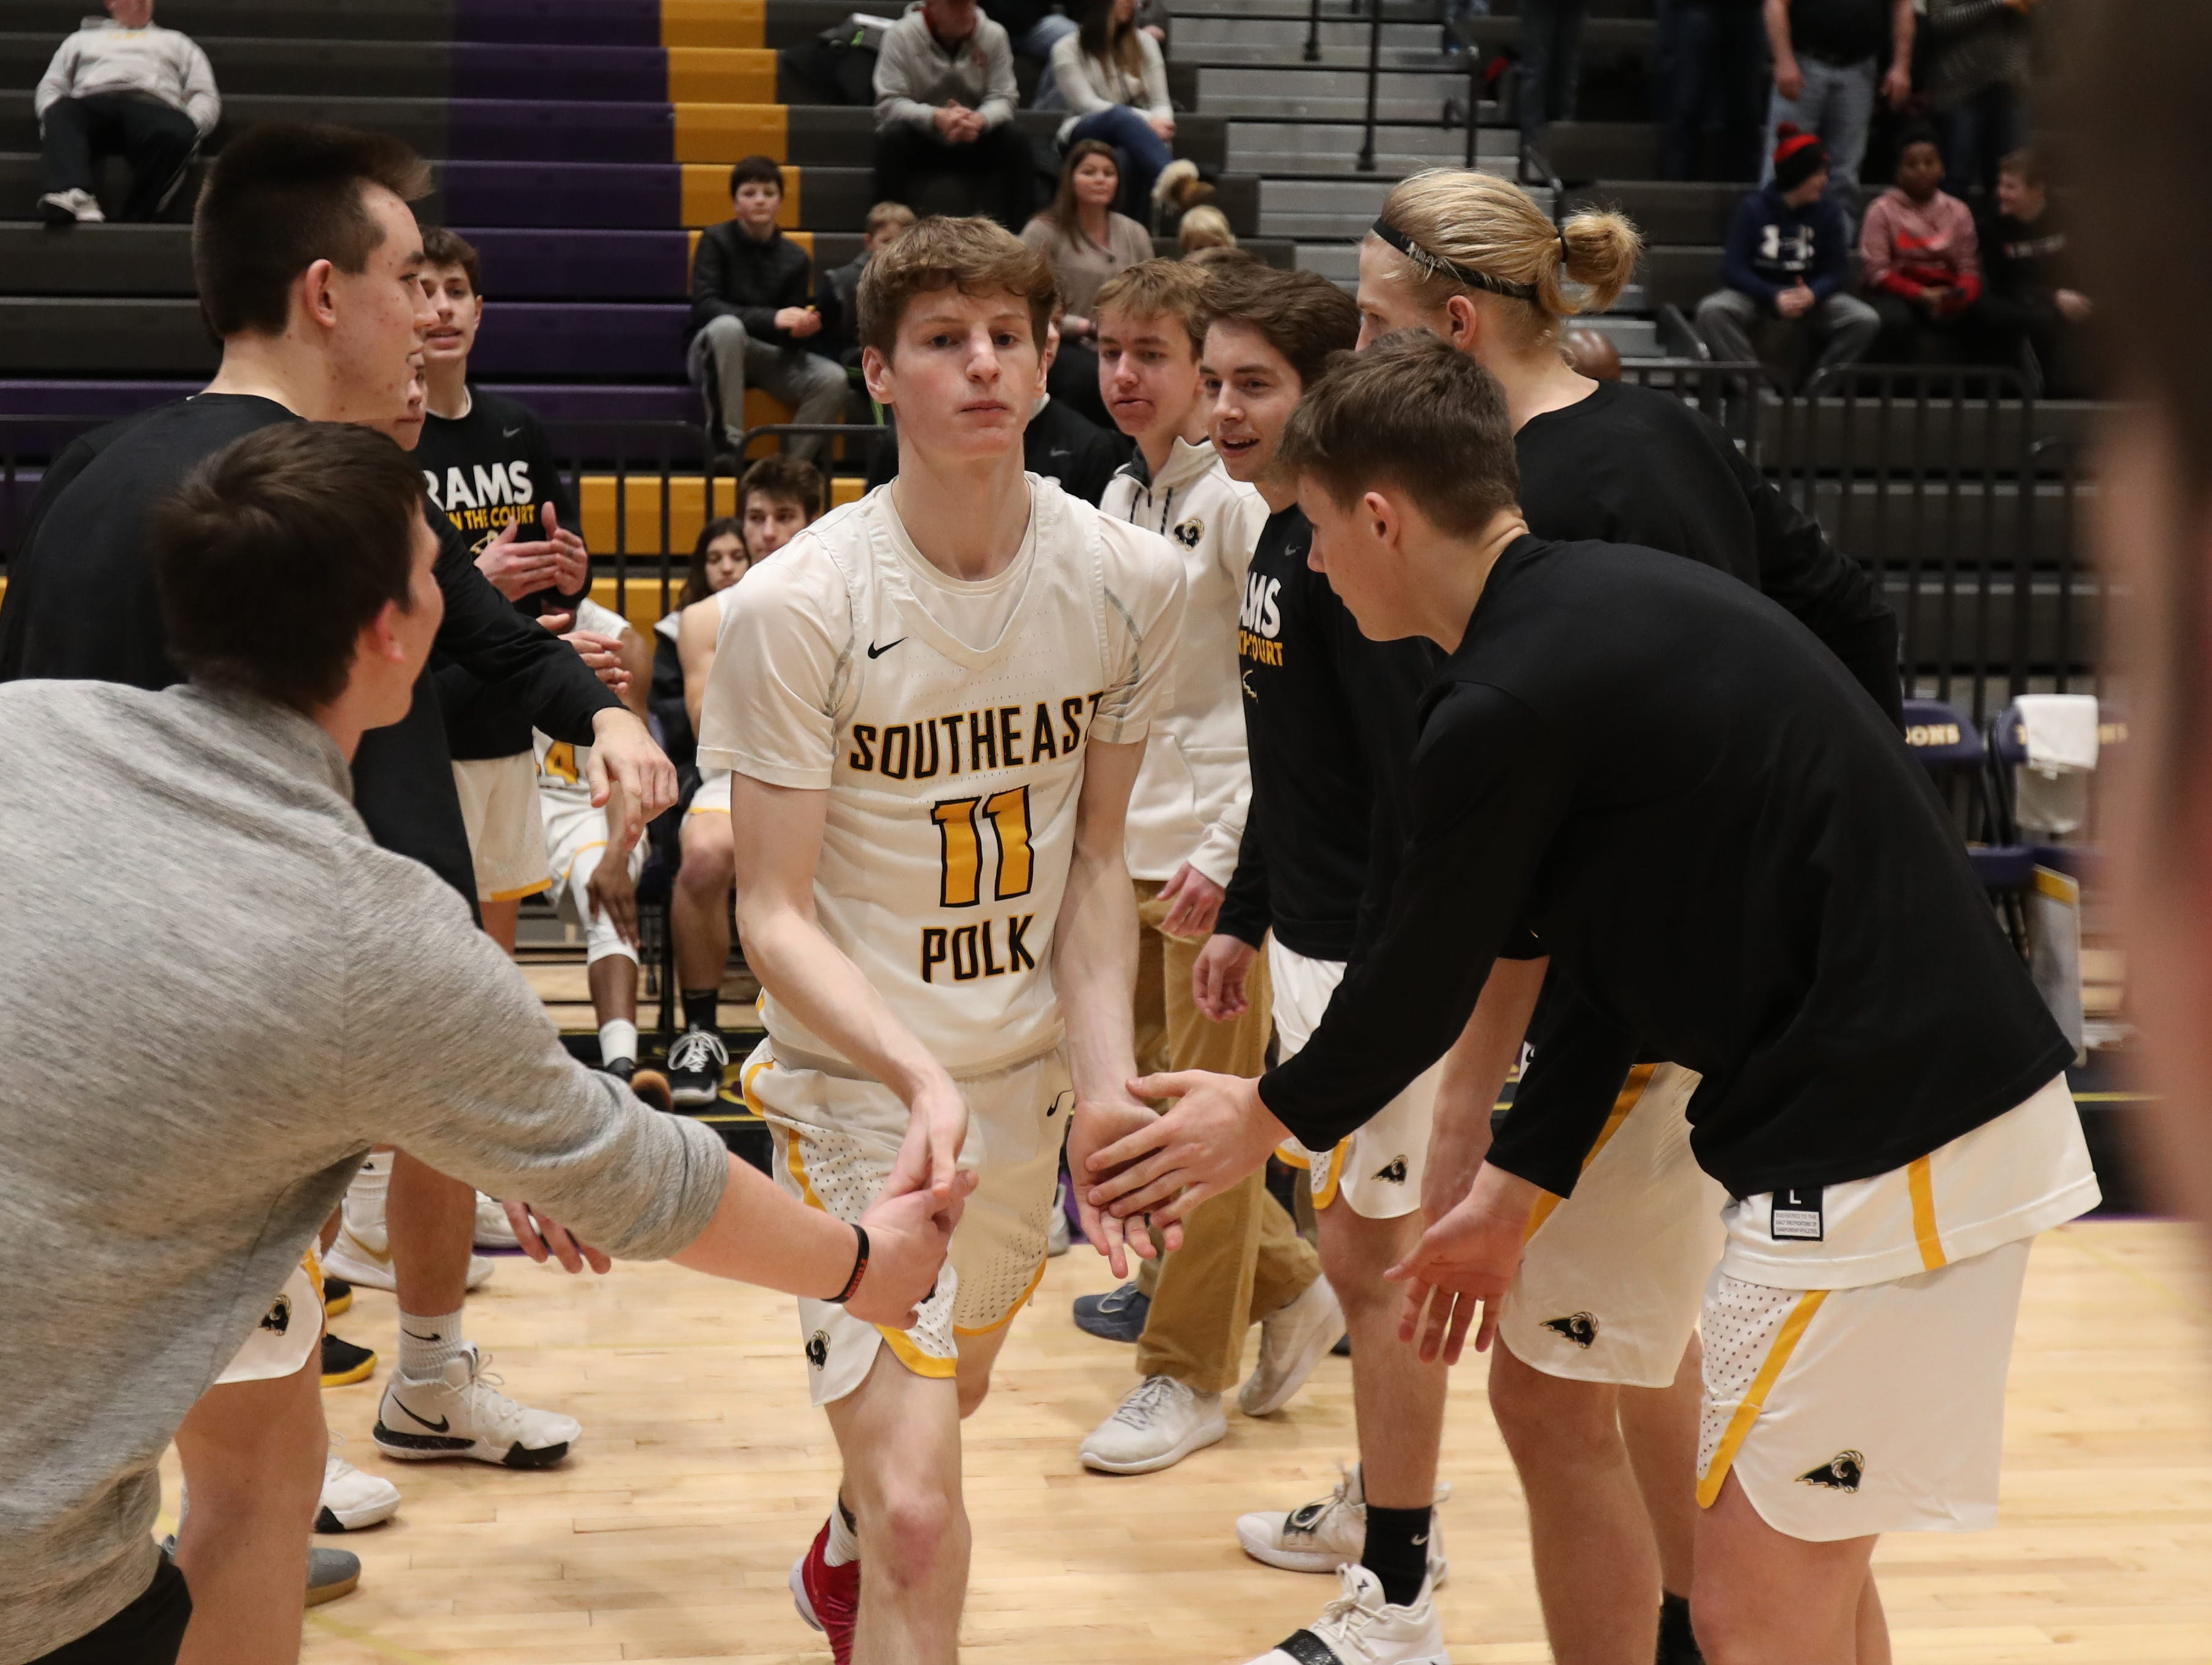 Southeast Polk's Sam Glenn (11) is introduced before the game against Dowling Catholic at Johnston High School in Johnston, Iowa, on Tuesday, Feb. 26, 2019.